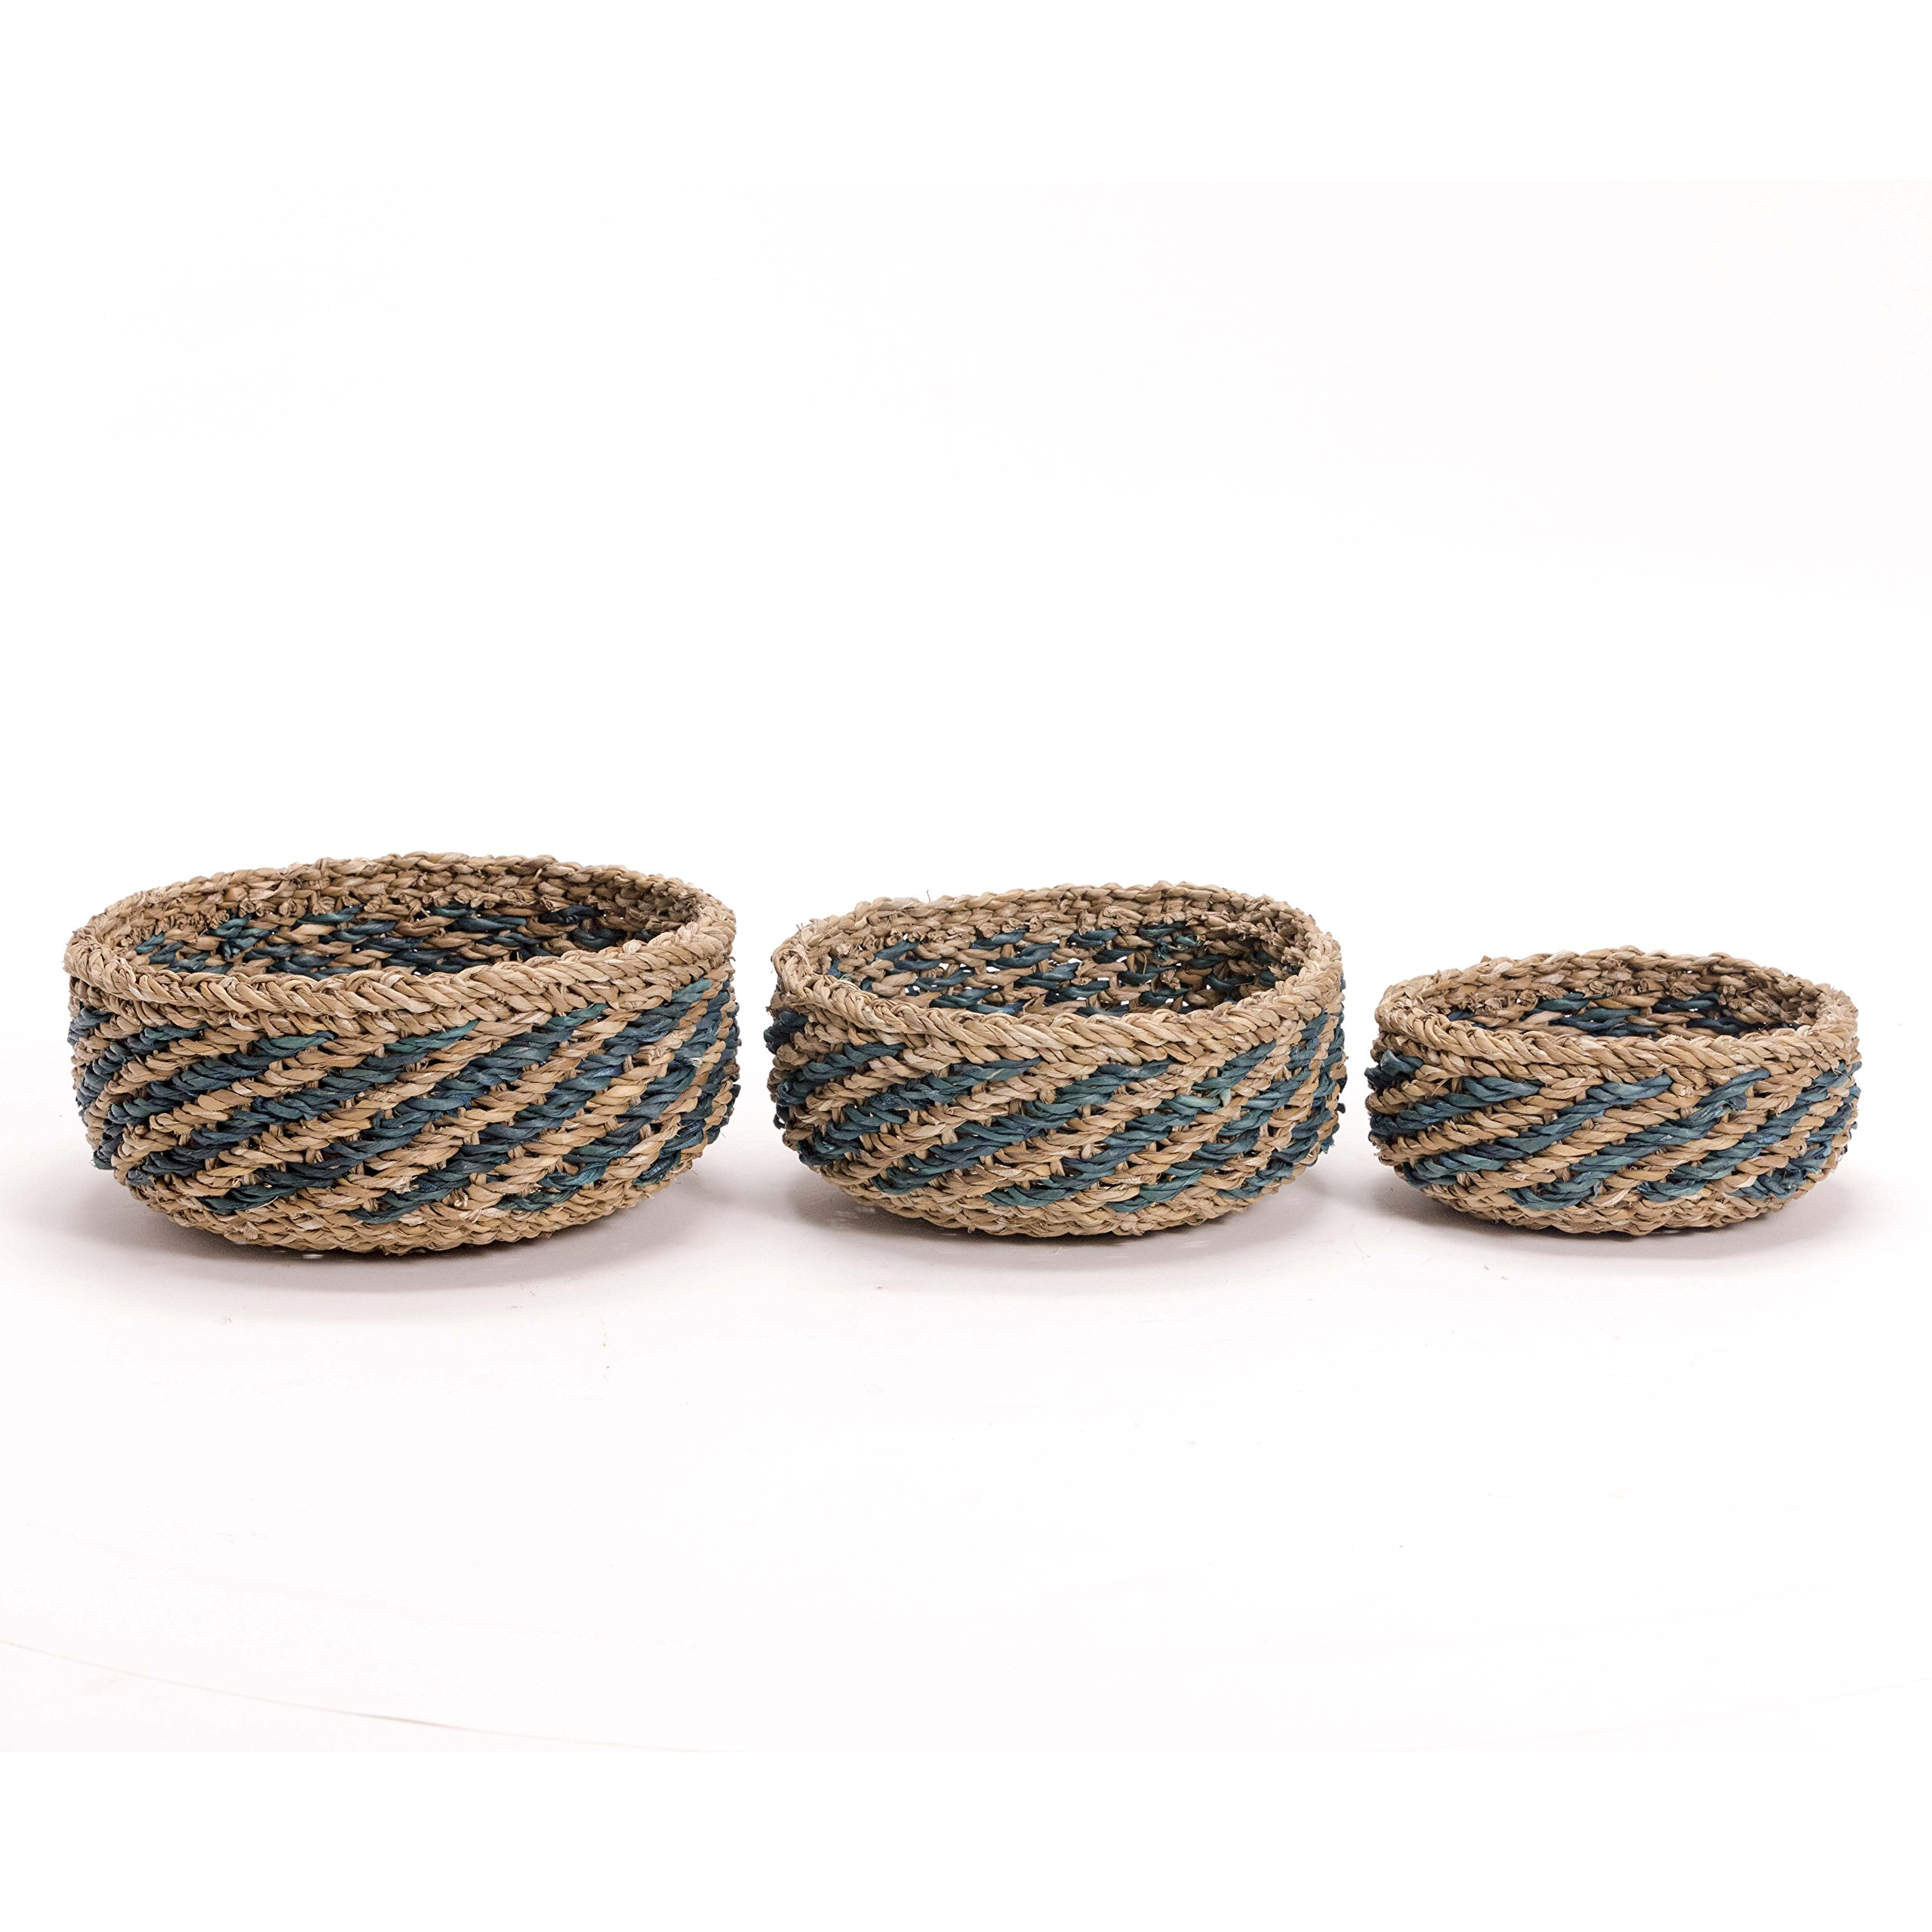 Whole House Worlds The Made by Nature Beach House Bowls, Set of 3, Natural Chunky Sweater Weave, Seaside Blue Stripes, Handmade, From 12-8 Inches In Diameter, By